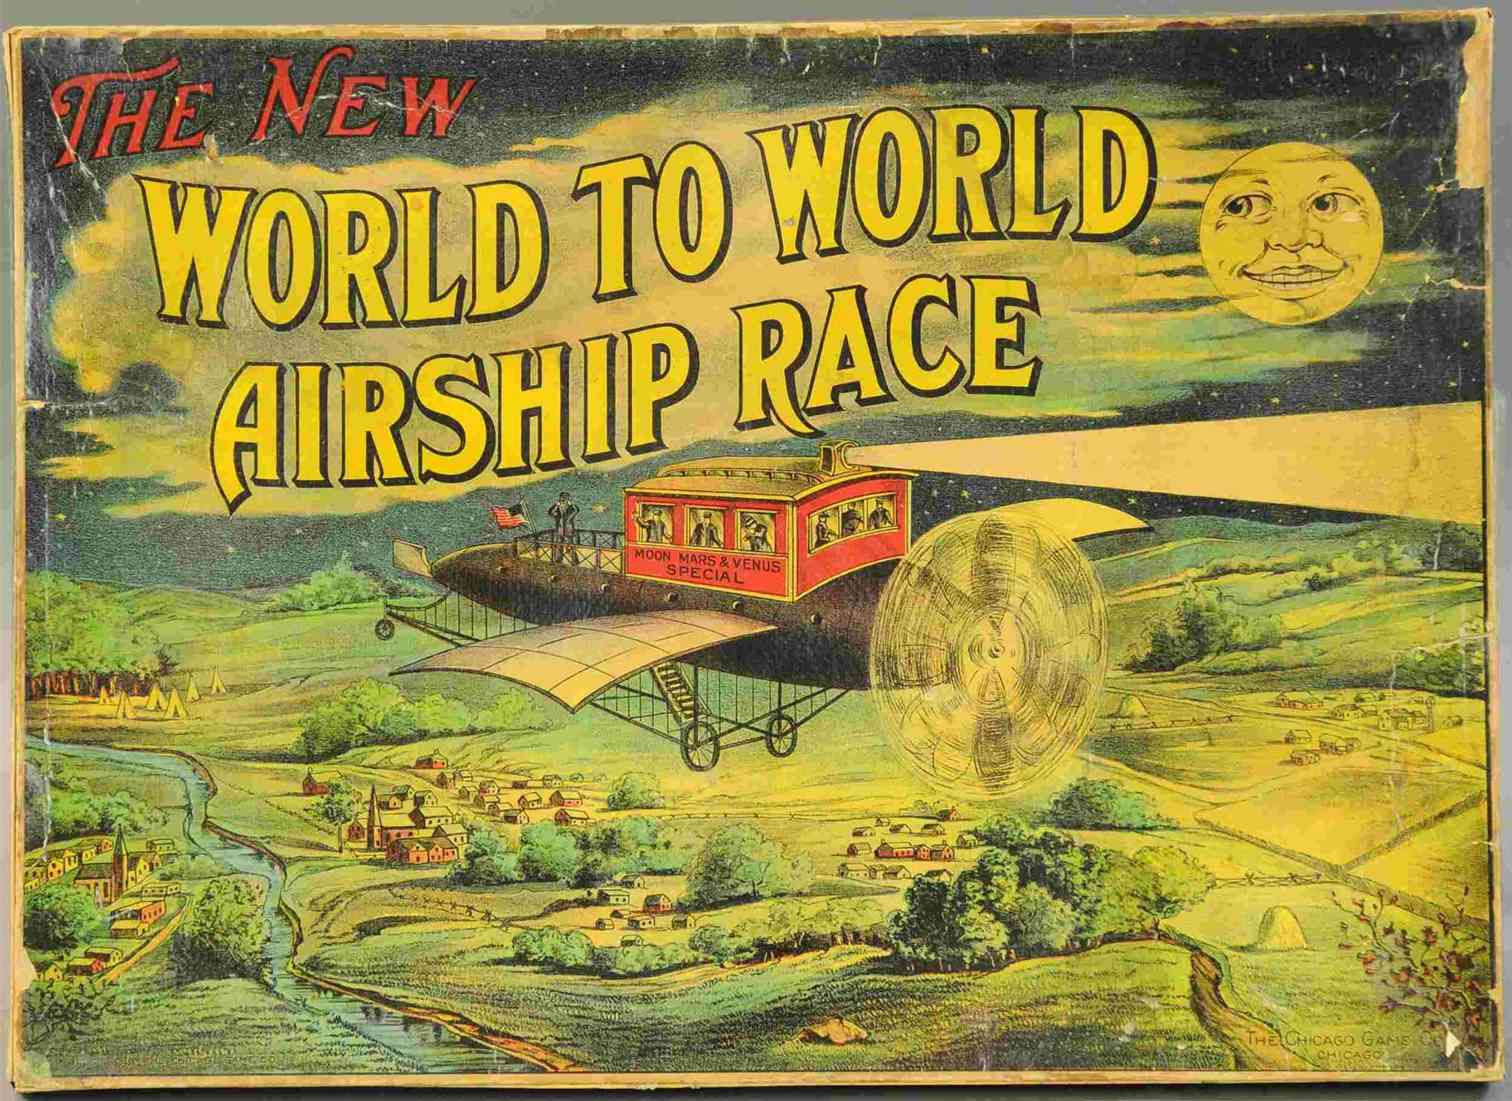 chicago game co board game world to world airship race chicago moon mars venus